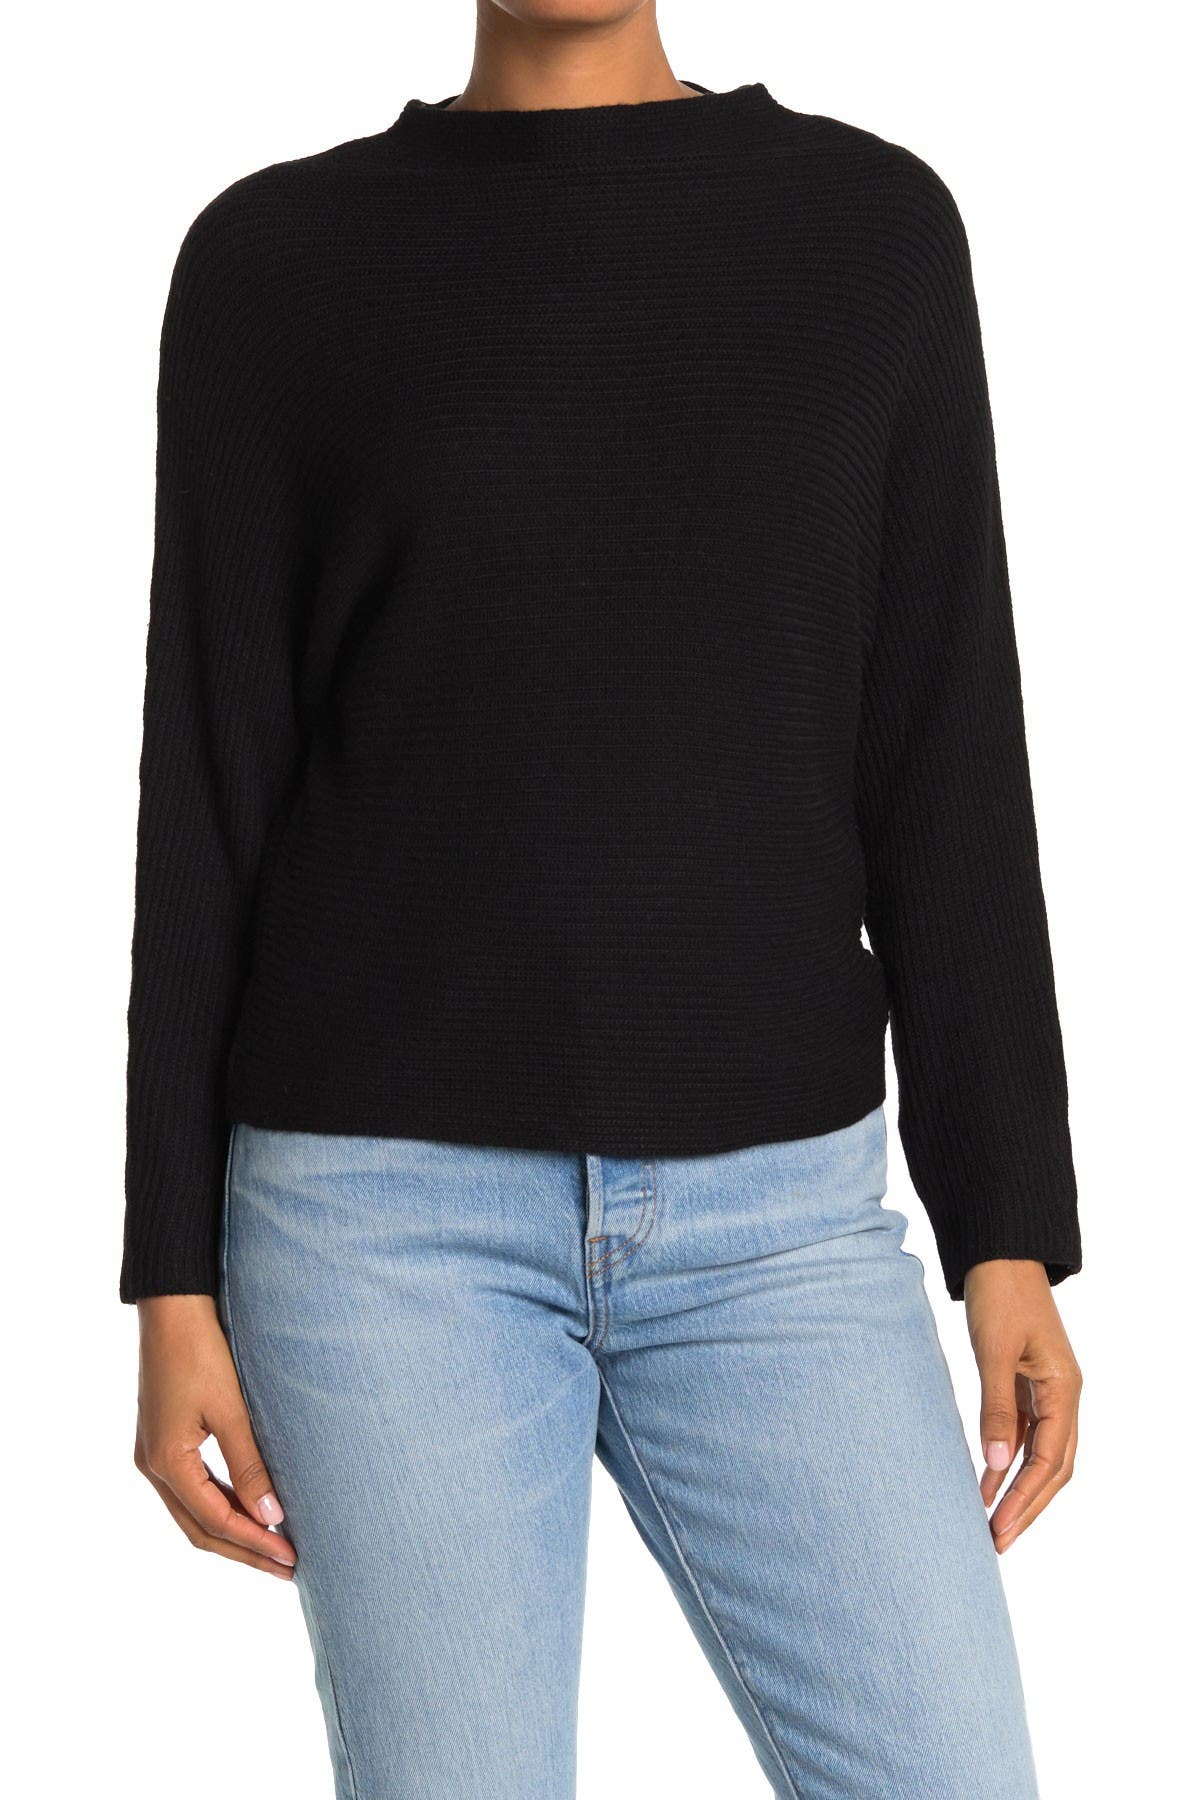 Image of Philosophy Apparel Ribbed Dolman Sleeve Sweater